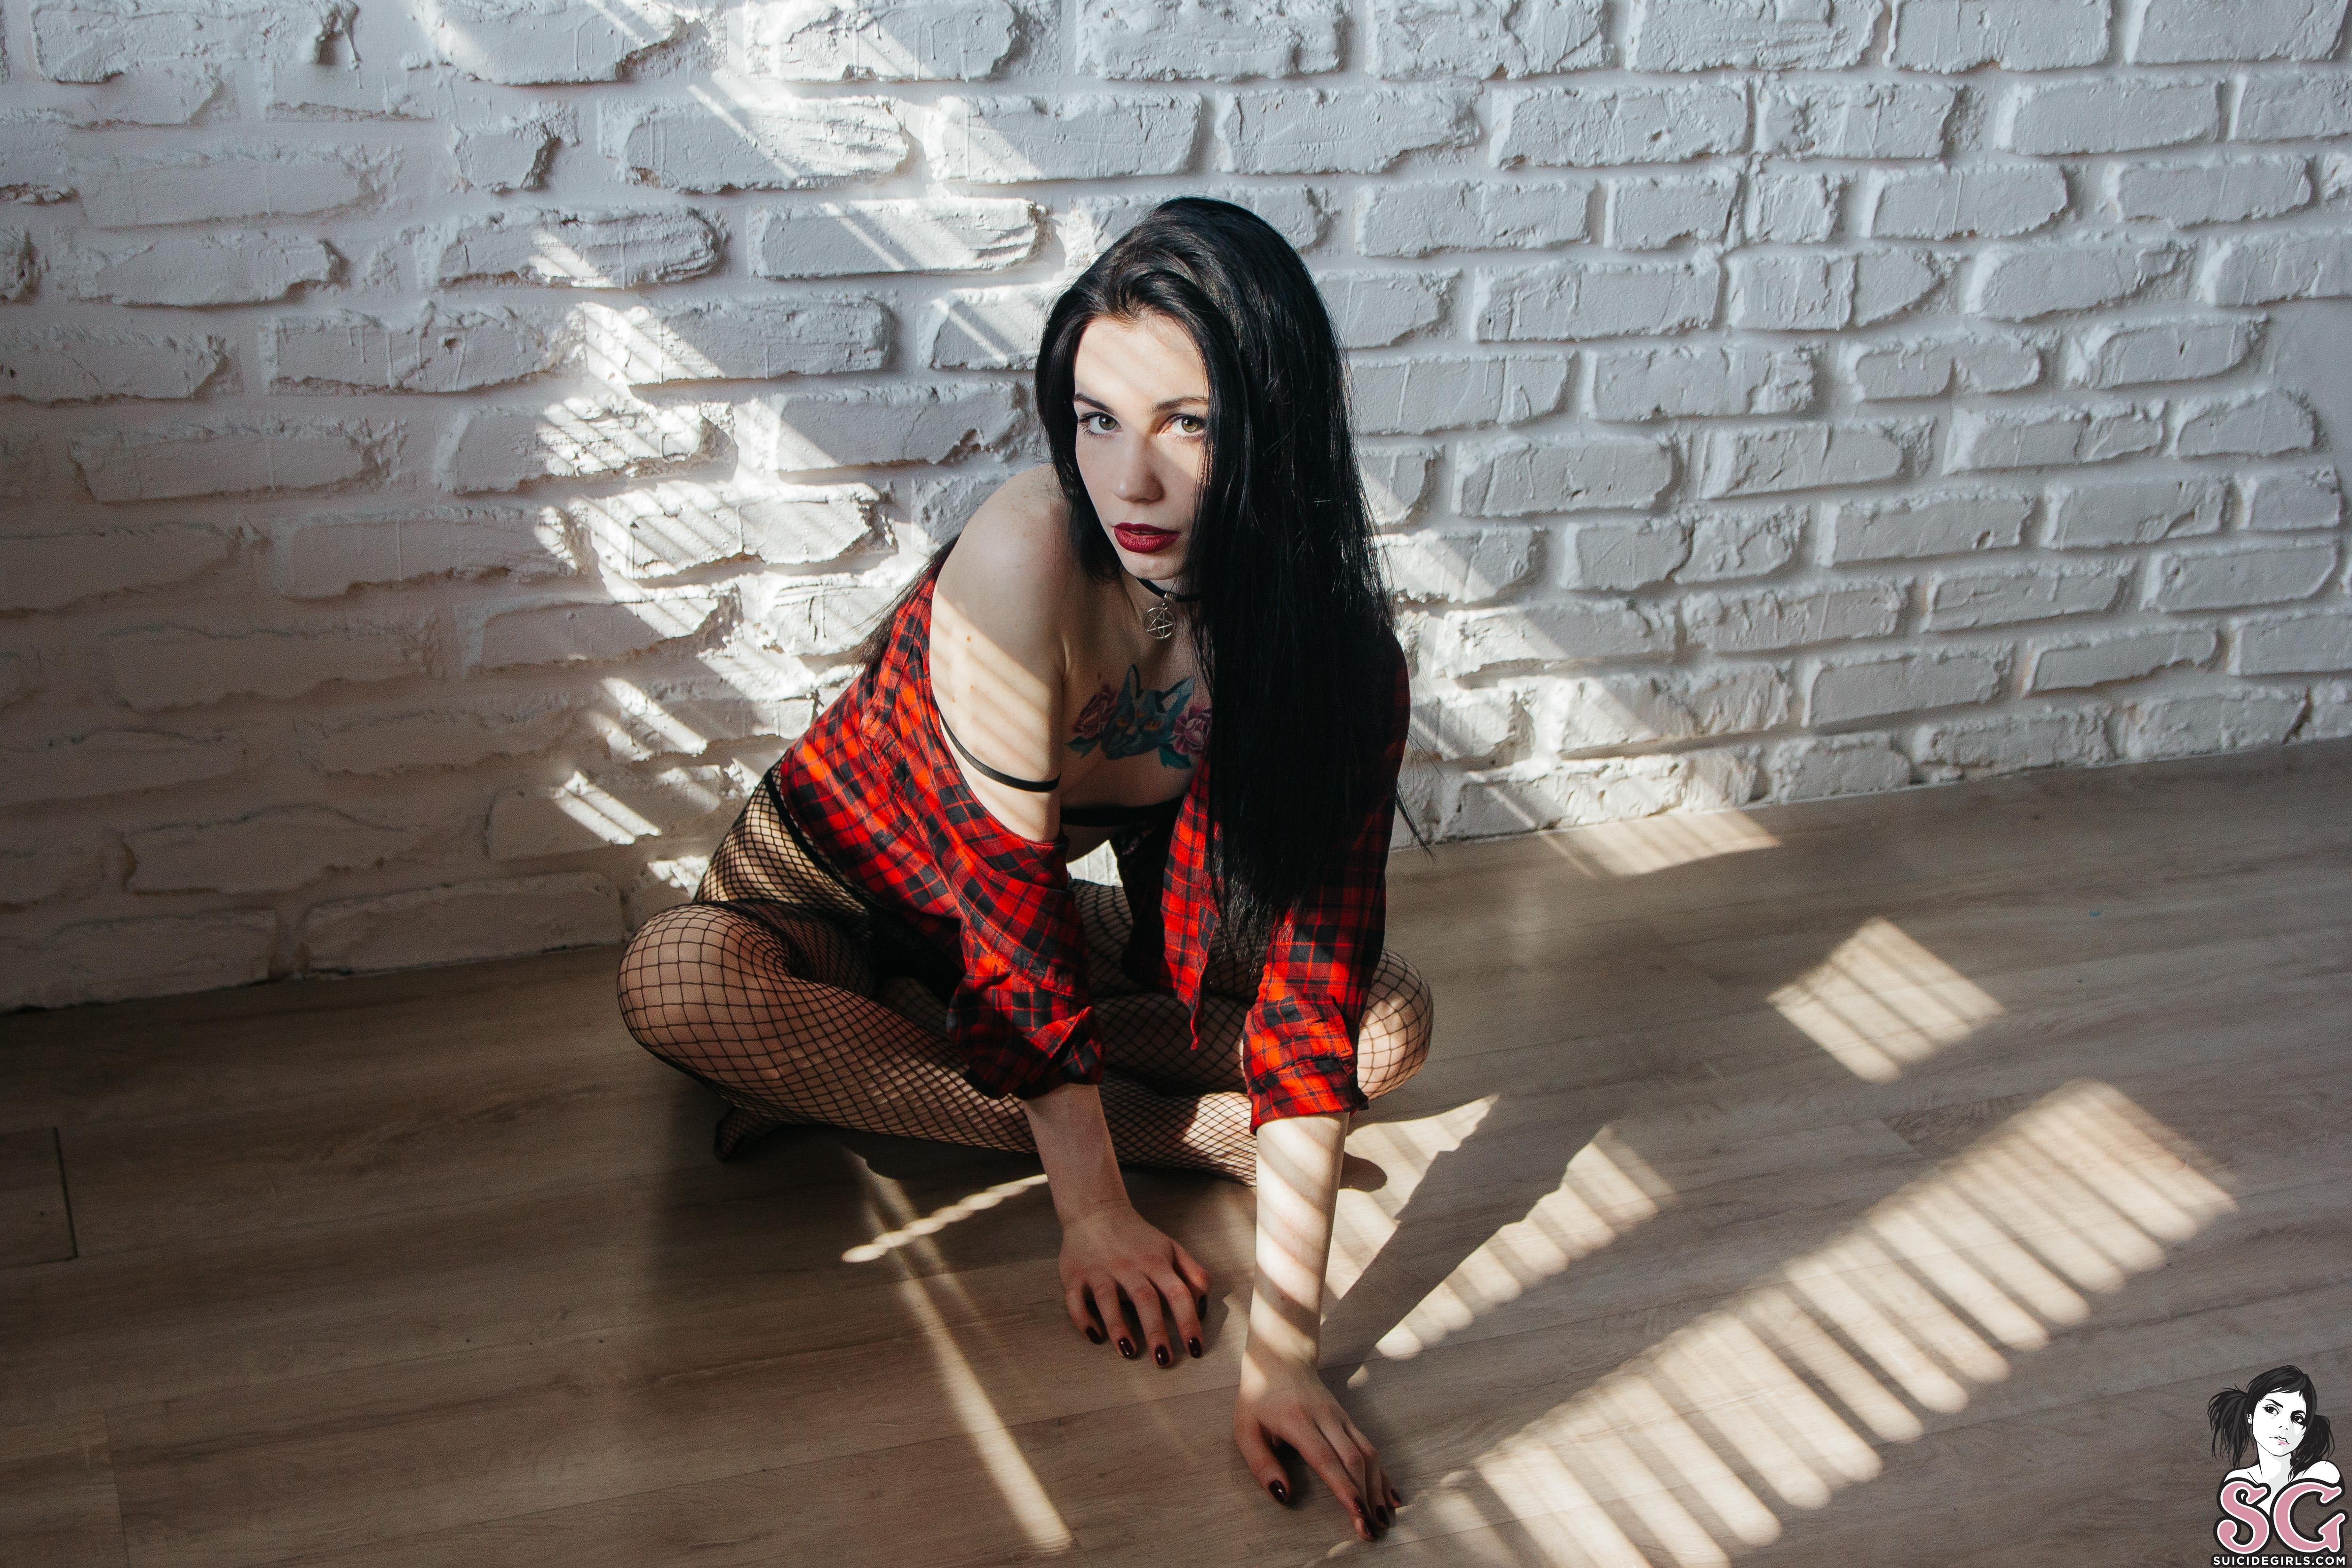 Lesyamoon My Lovely Work Suicidepics Images, Photos, Reviews